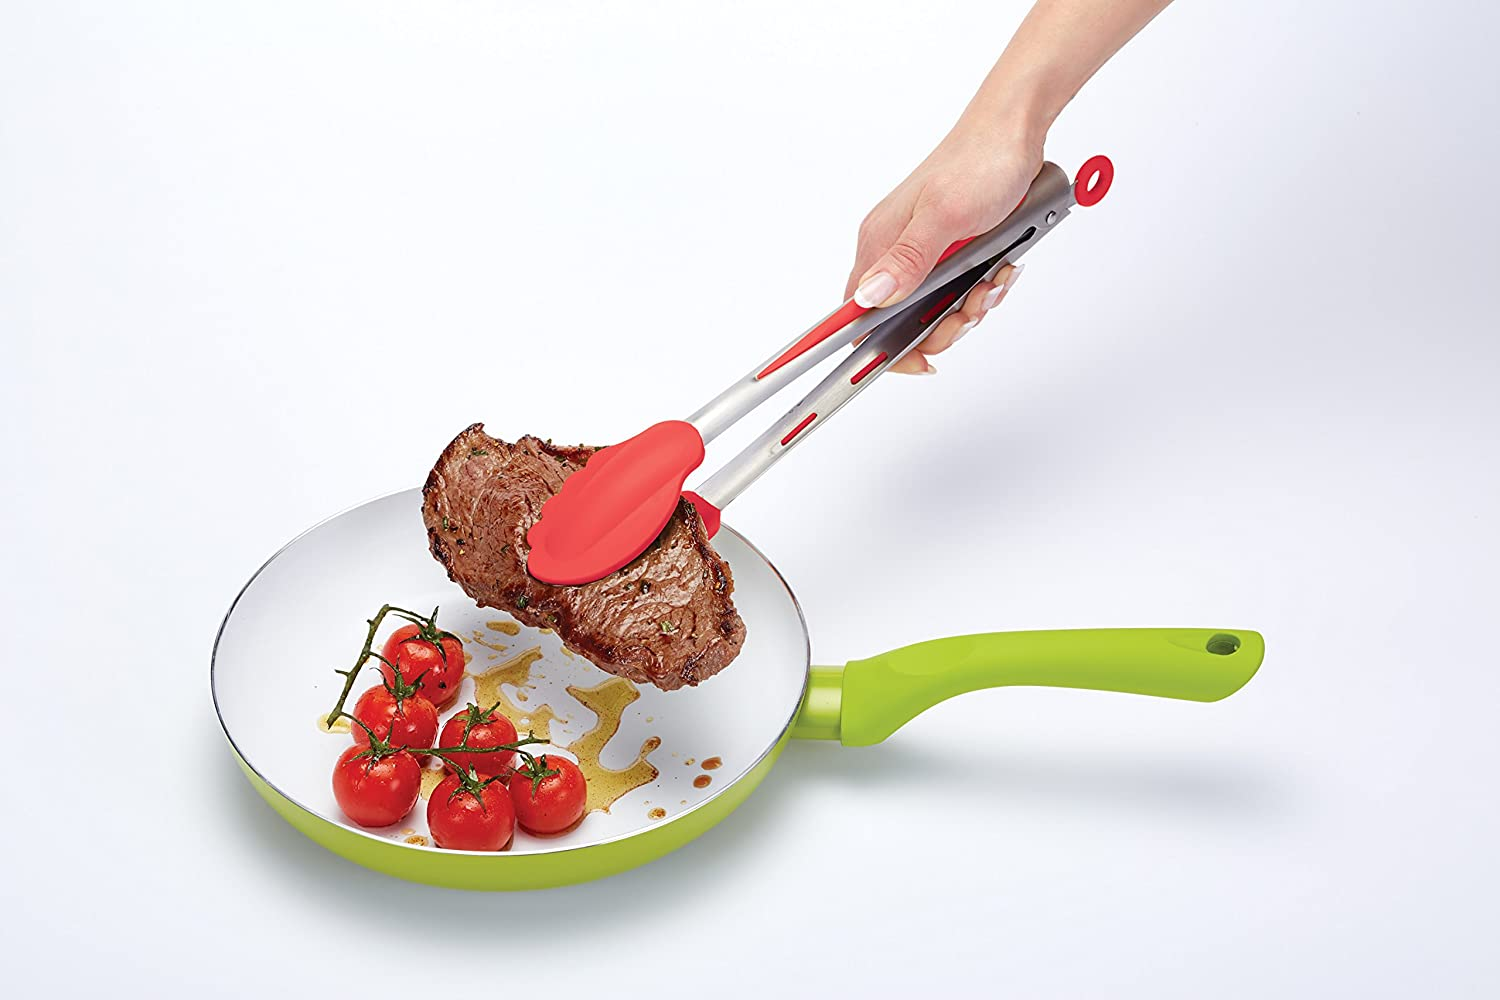 kitchen-craft-colourworks-silicone-food-tongs-with-red-soft-grip-30-cm